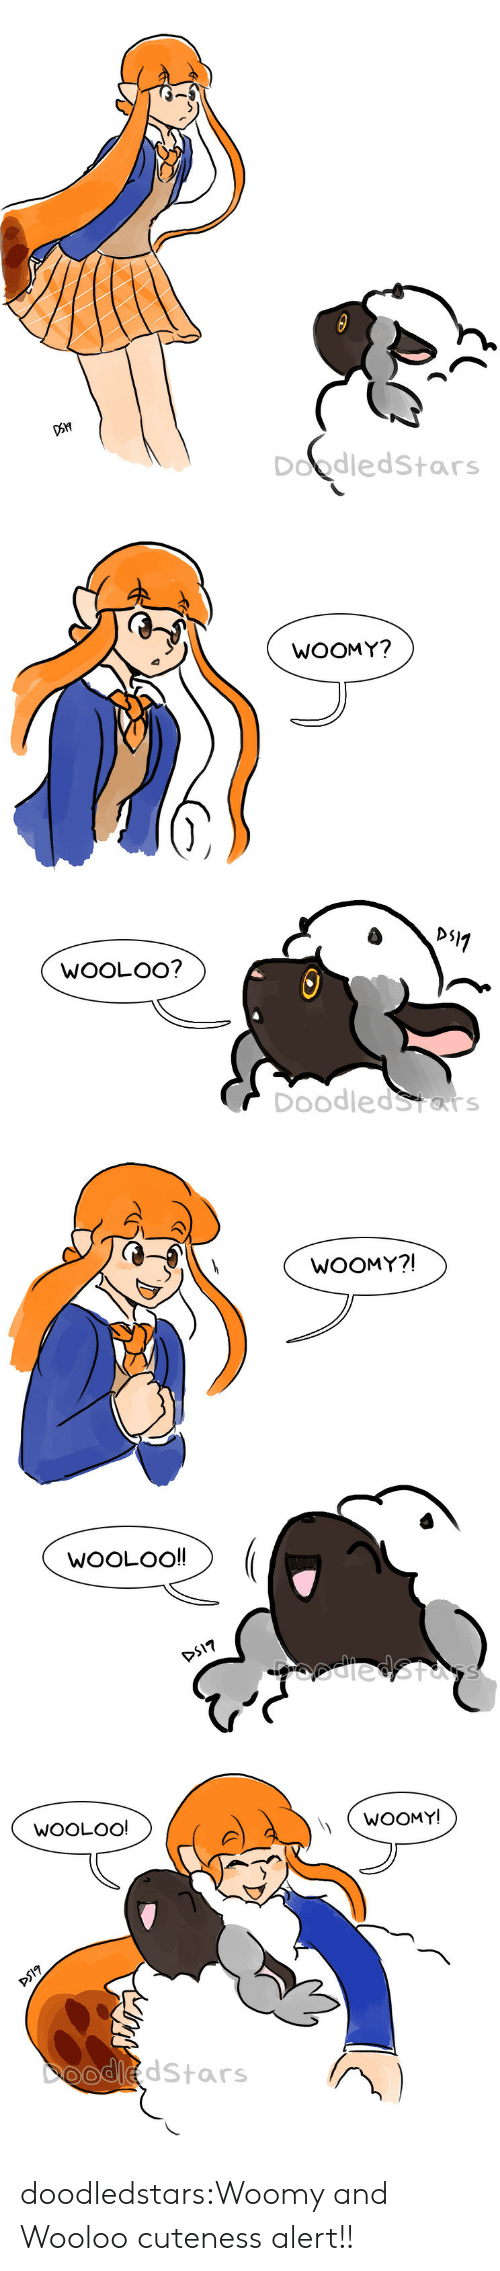 Tumblr, Blog, and Com: Doodledstars   WOOMY?  WOOLOO?  DoodledStars   WOOMY?!  WOOLOO!!  DS17  odiedStas   WOOLOO!  WOOMY!  DS17  DooddStars doodledstars:Woomy and Wooloo cuteness alert!!